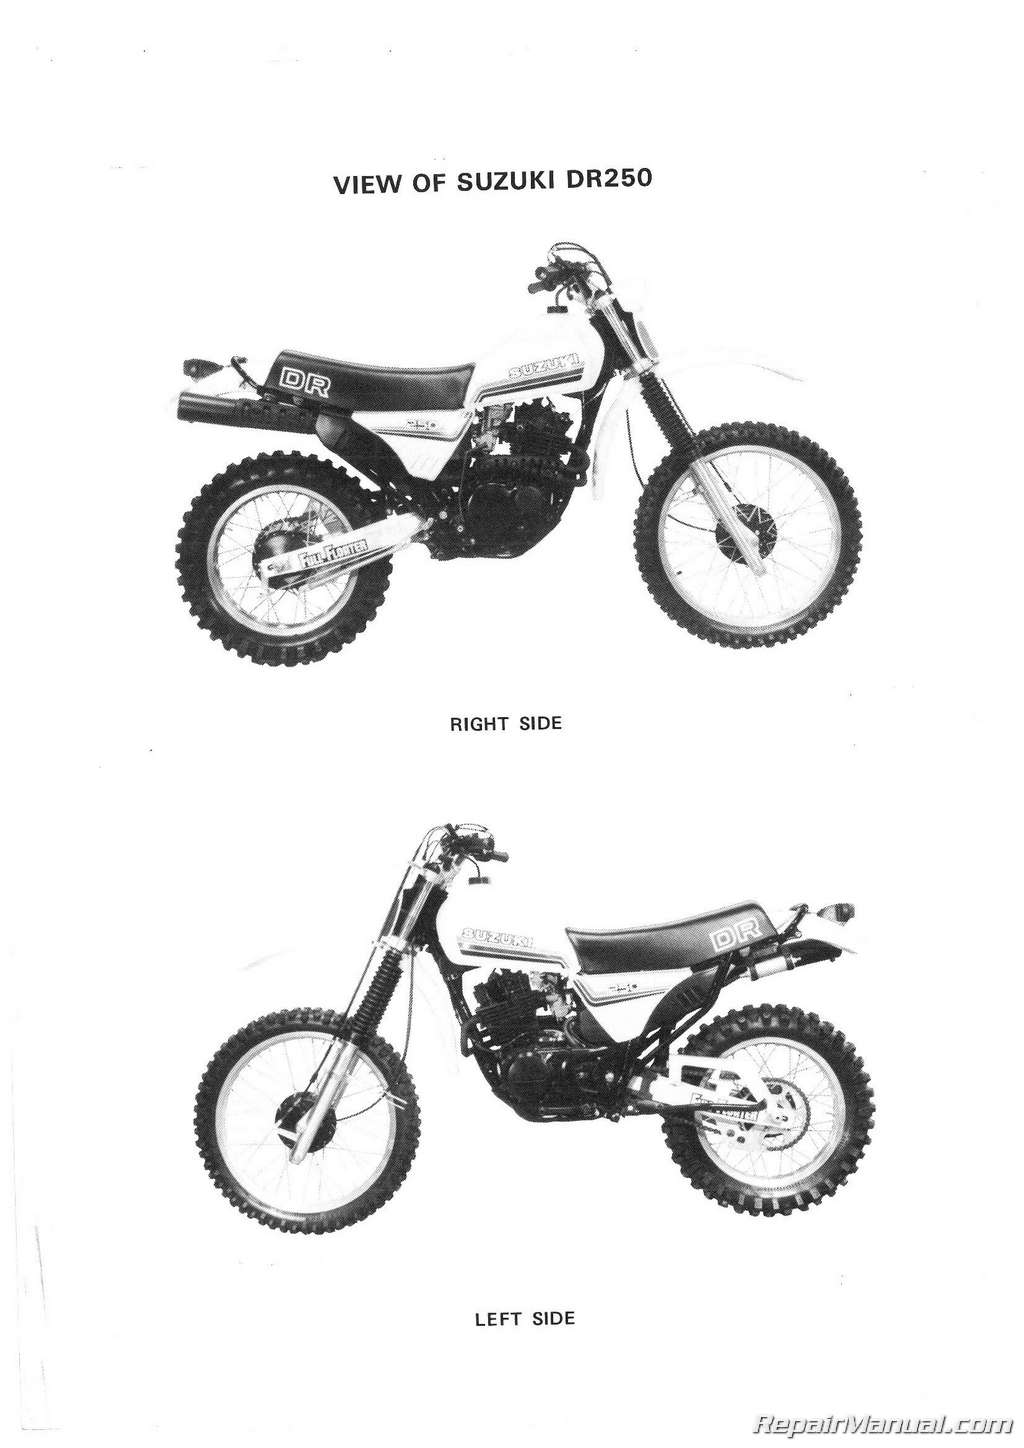 1982 1985 Suzuki Dr250 Sp250 Motorcycle Service Manual Rv 125 Wiring Diagram